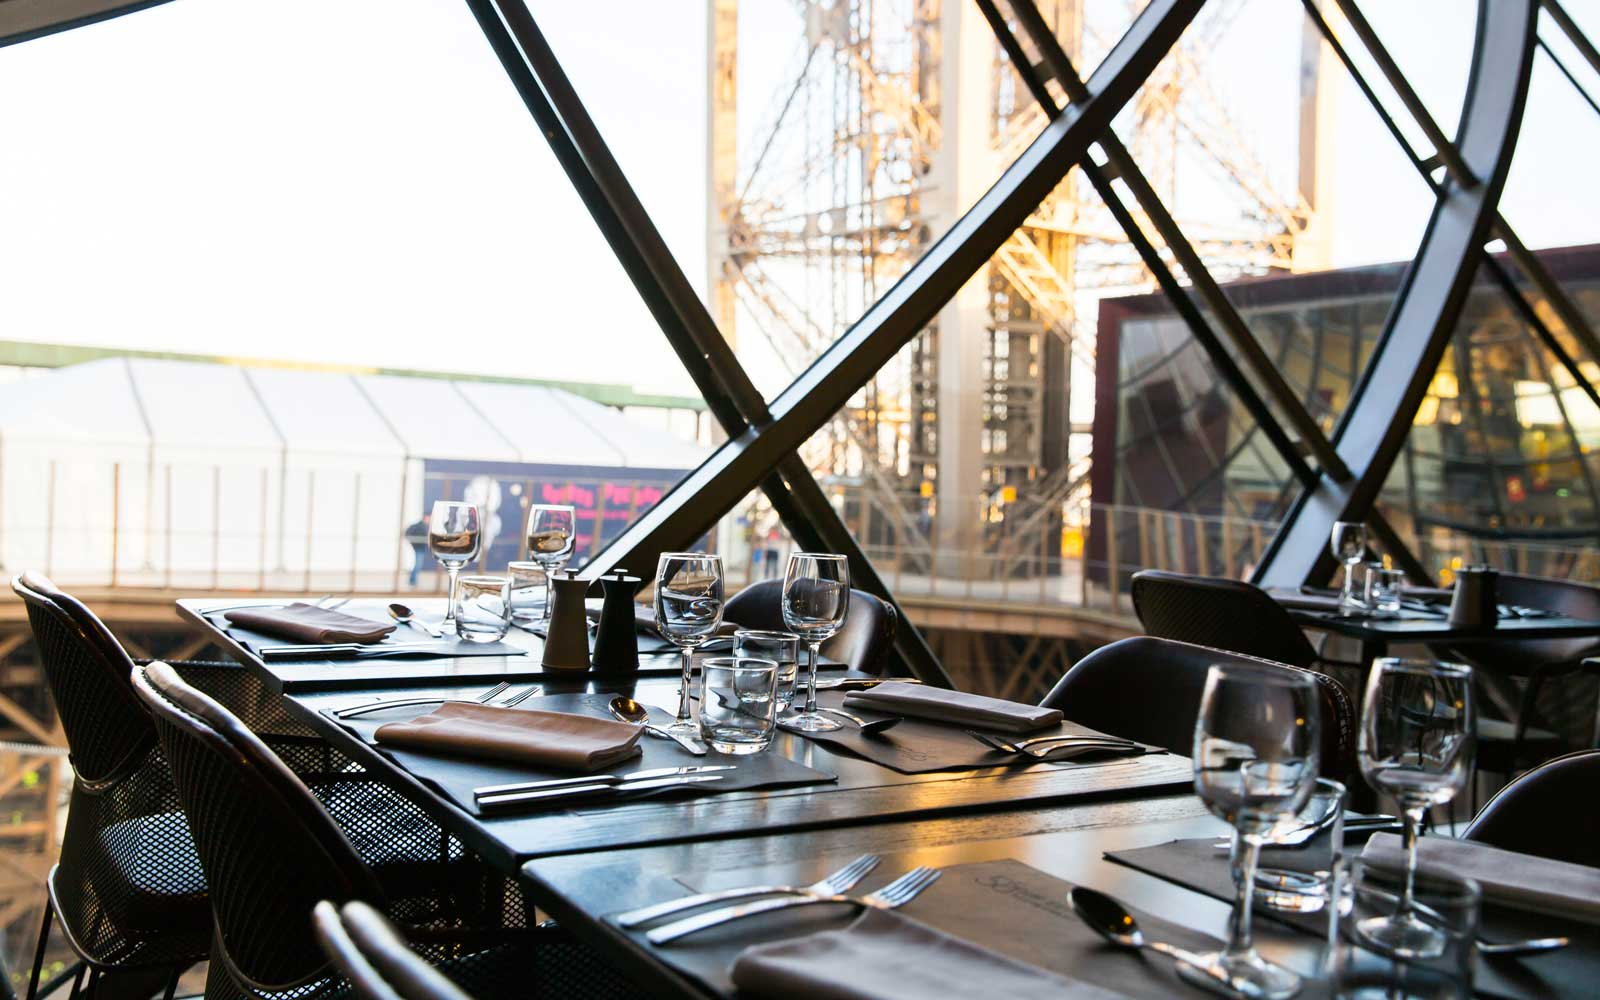 Here's How to Skip the Lines and Have a Gourmet Four-course Meal Inside the Eiffel Tower For Under $200